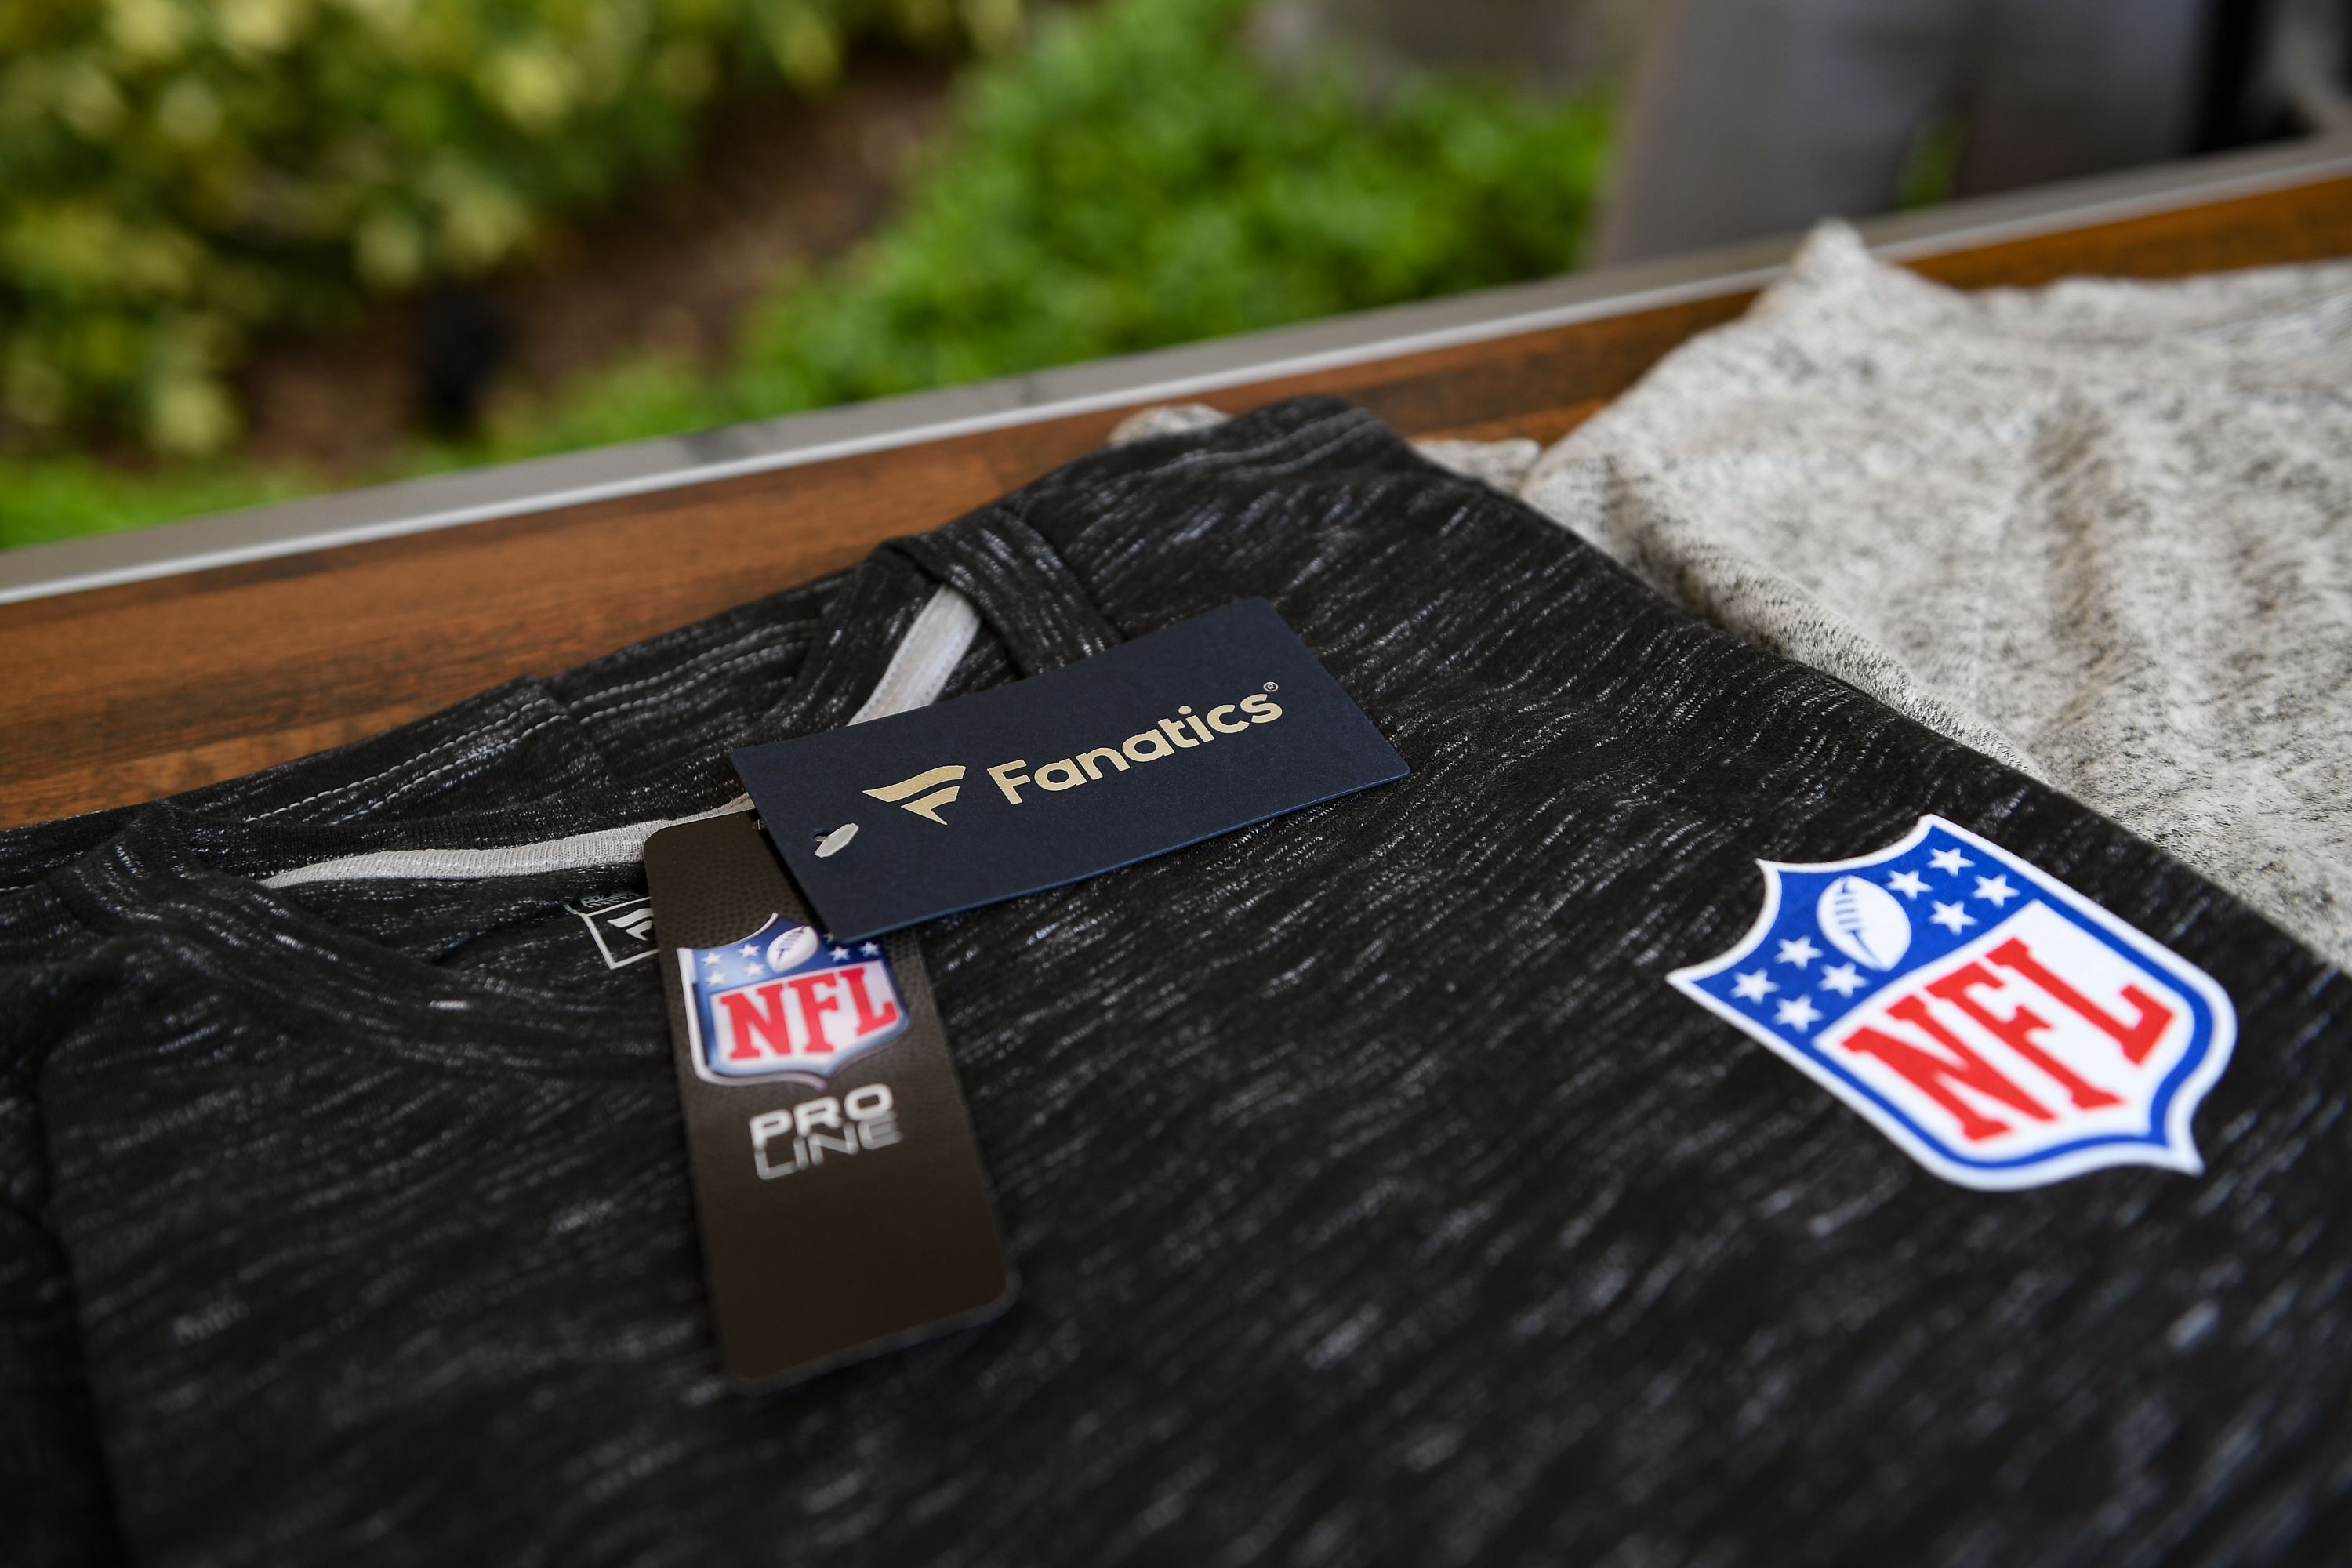 Kohl's lands deal with Fanatics to sell its sports gear online